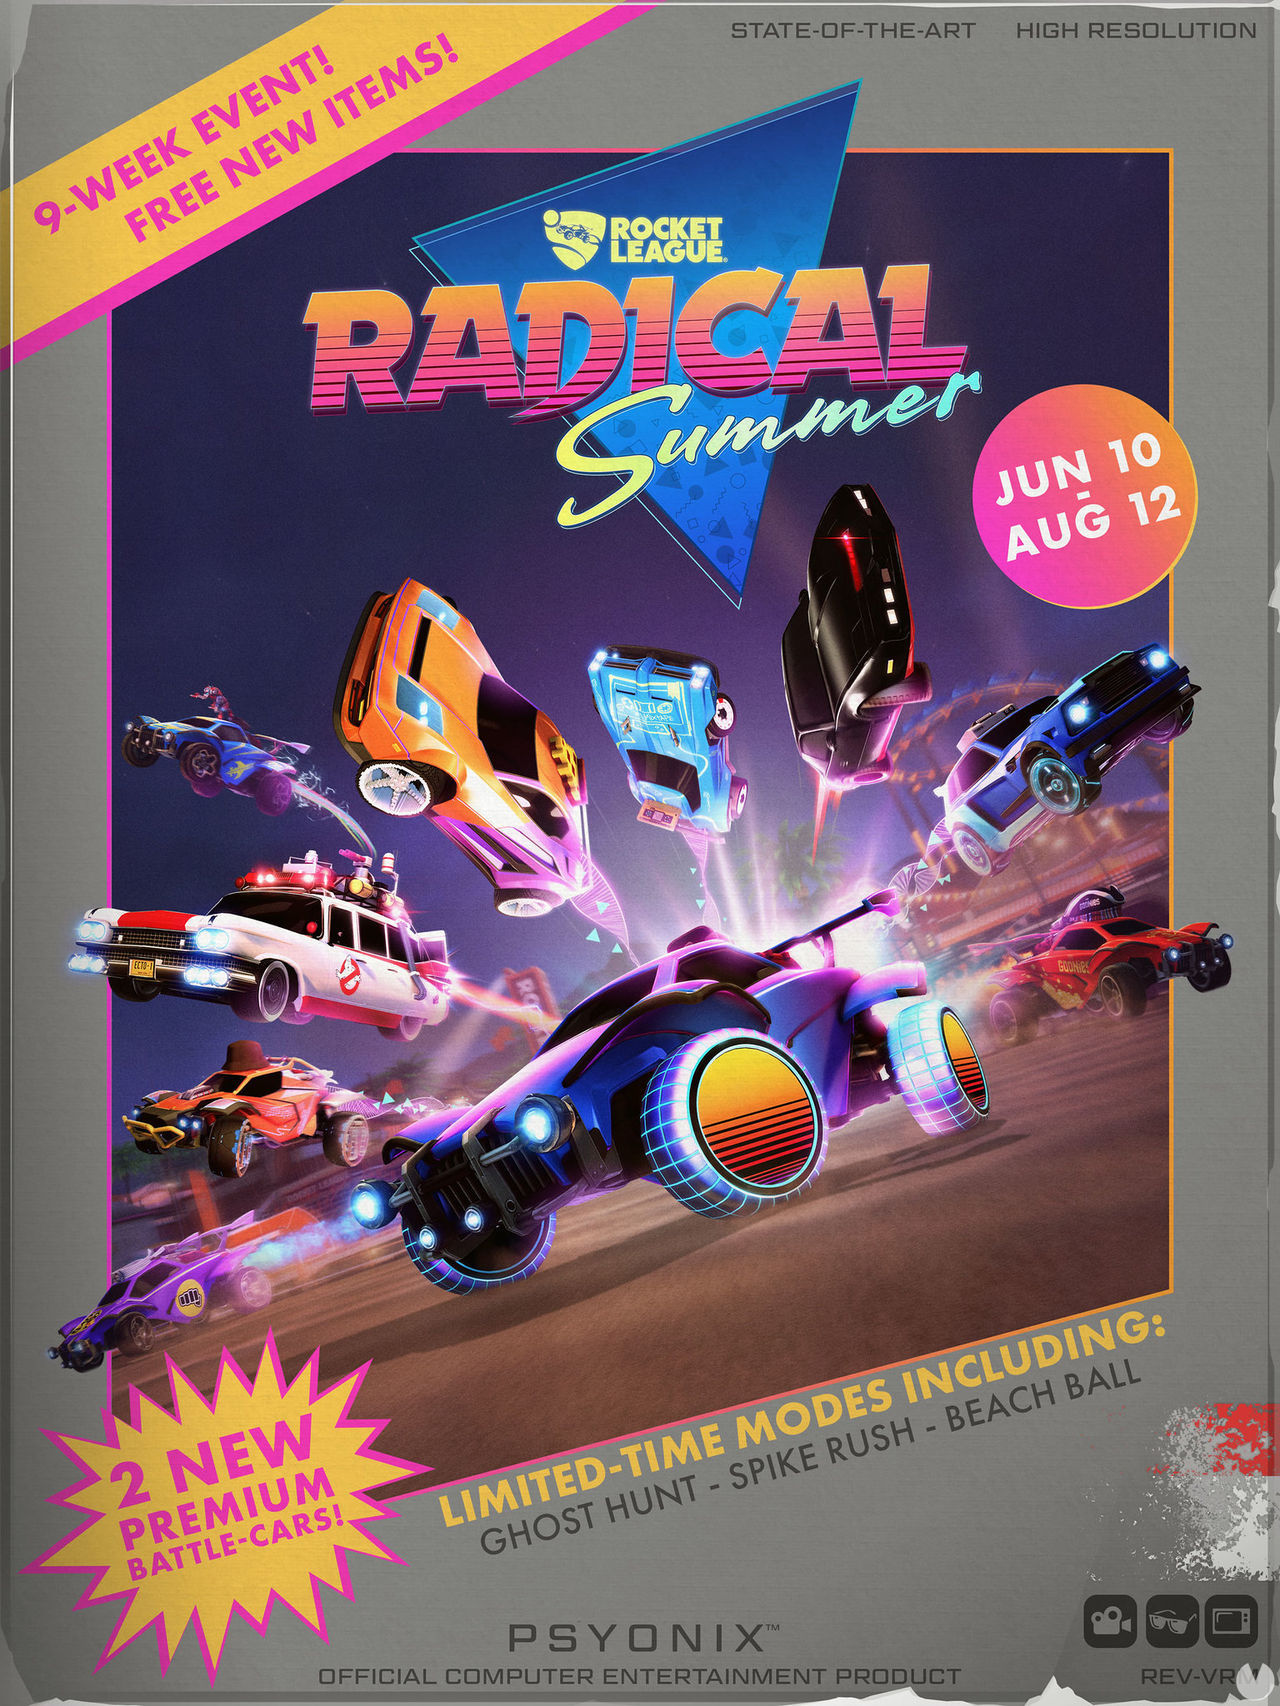 Rocket League announced its event Radical Summer dedicated to the years 80